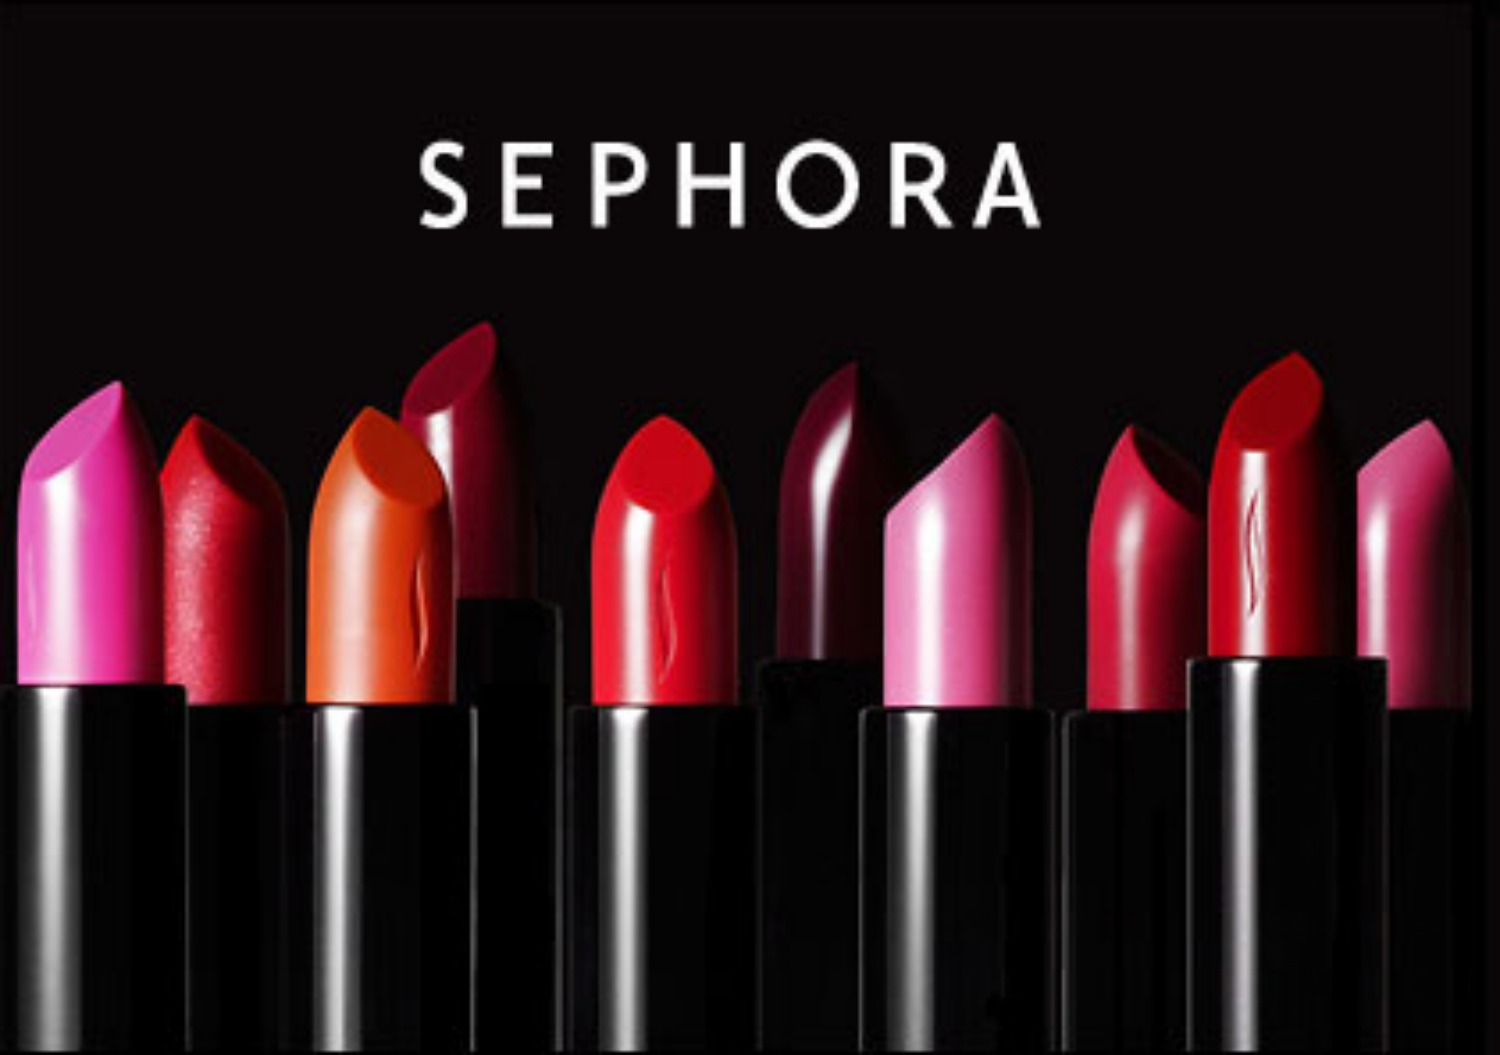 Sephora is a Paris, France-based multinational chain of personal care and beauty stores founded in Paris in Featuring nearly brands, along with its own private label, Sephora offers beauty products including cosmetics, skincare, body, fragrance, nail color, and migom-zaim.gaa is owned by luxury conglomerate LVMH as of The Sephora logo is a white